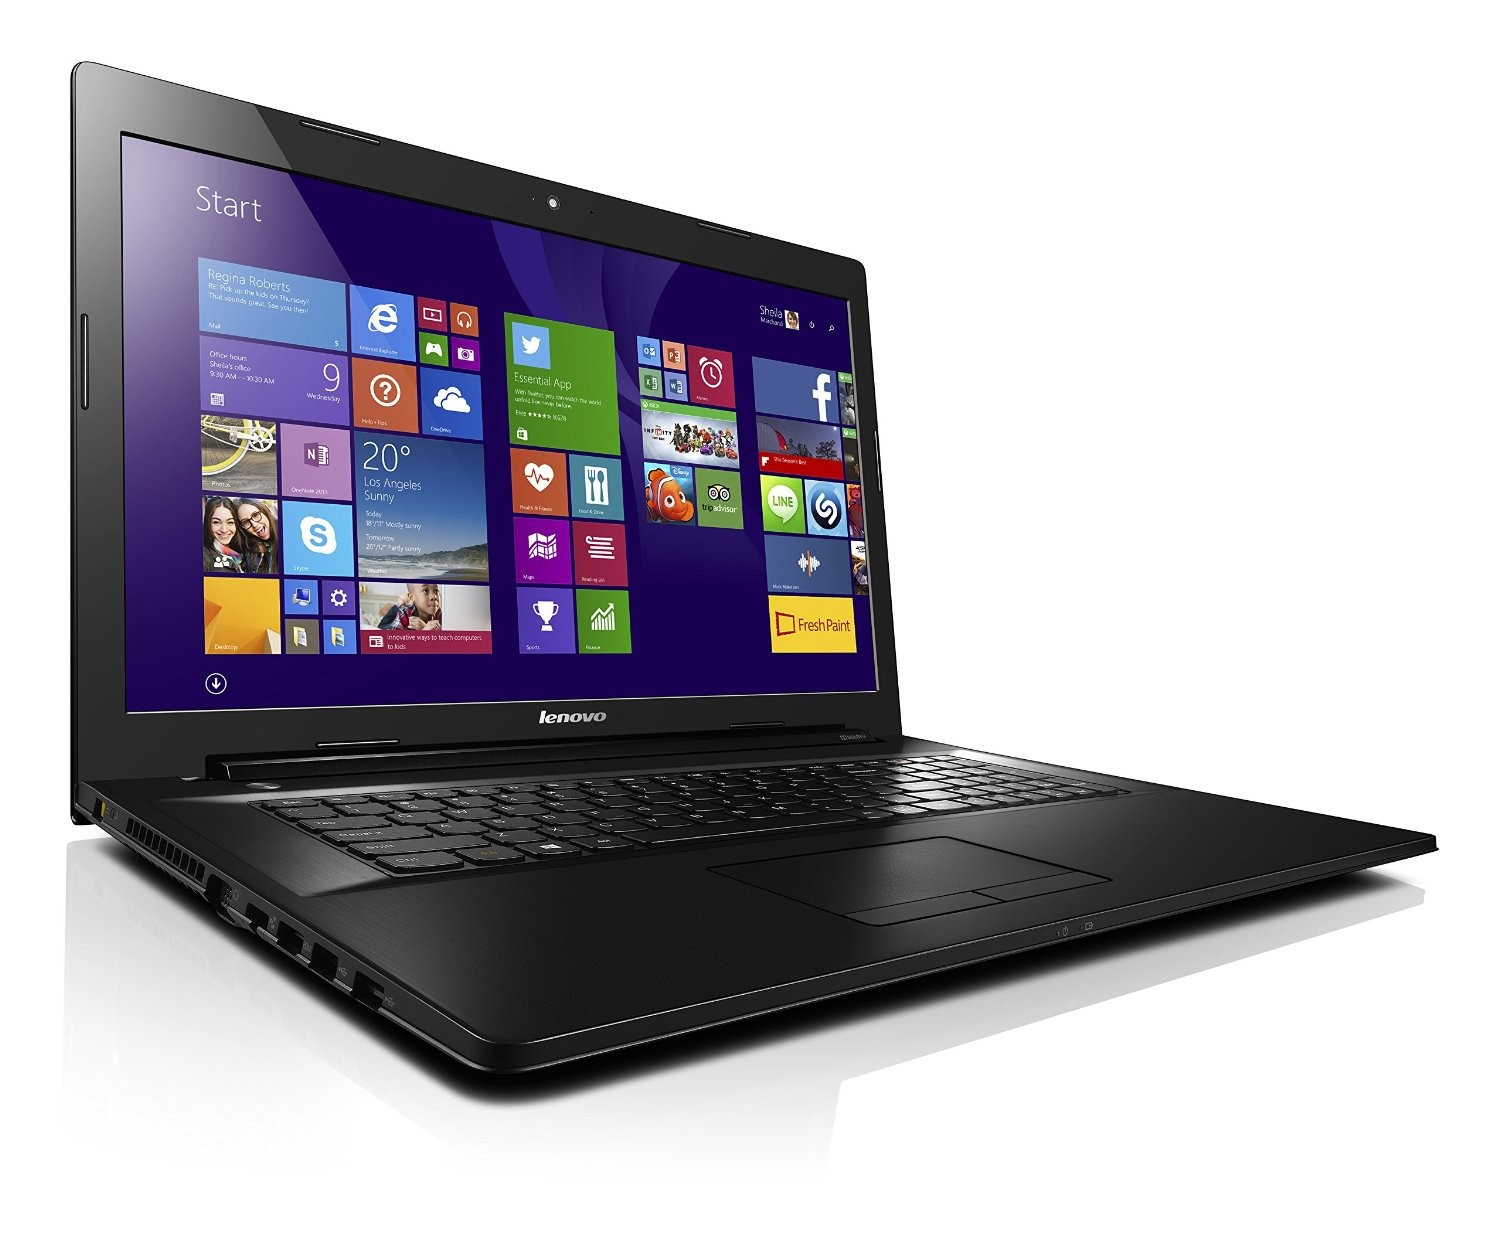 lenovo ideapad g70 80 43 9cm 17 3 zoll notebook. Black Bedroom Furniture Sets. Home Design Ideas